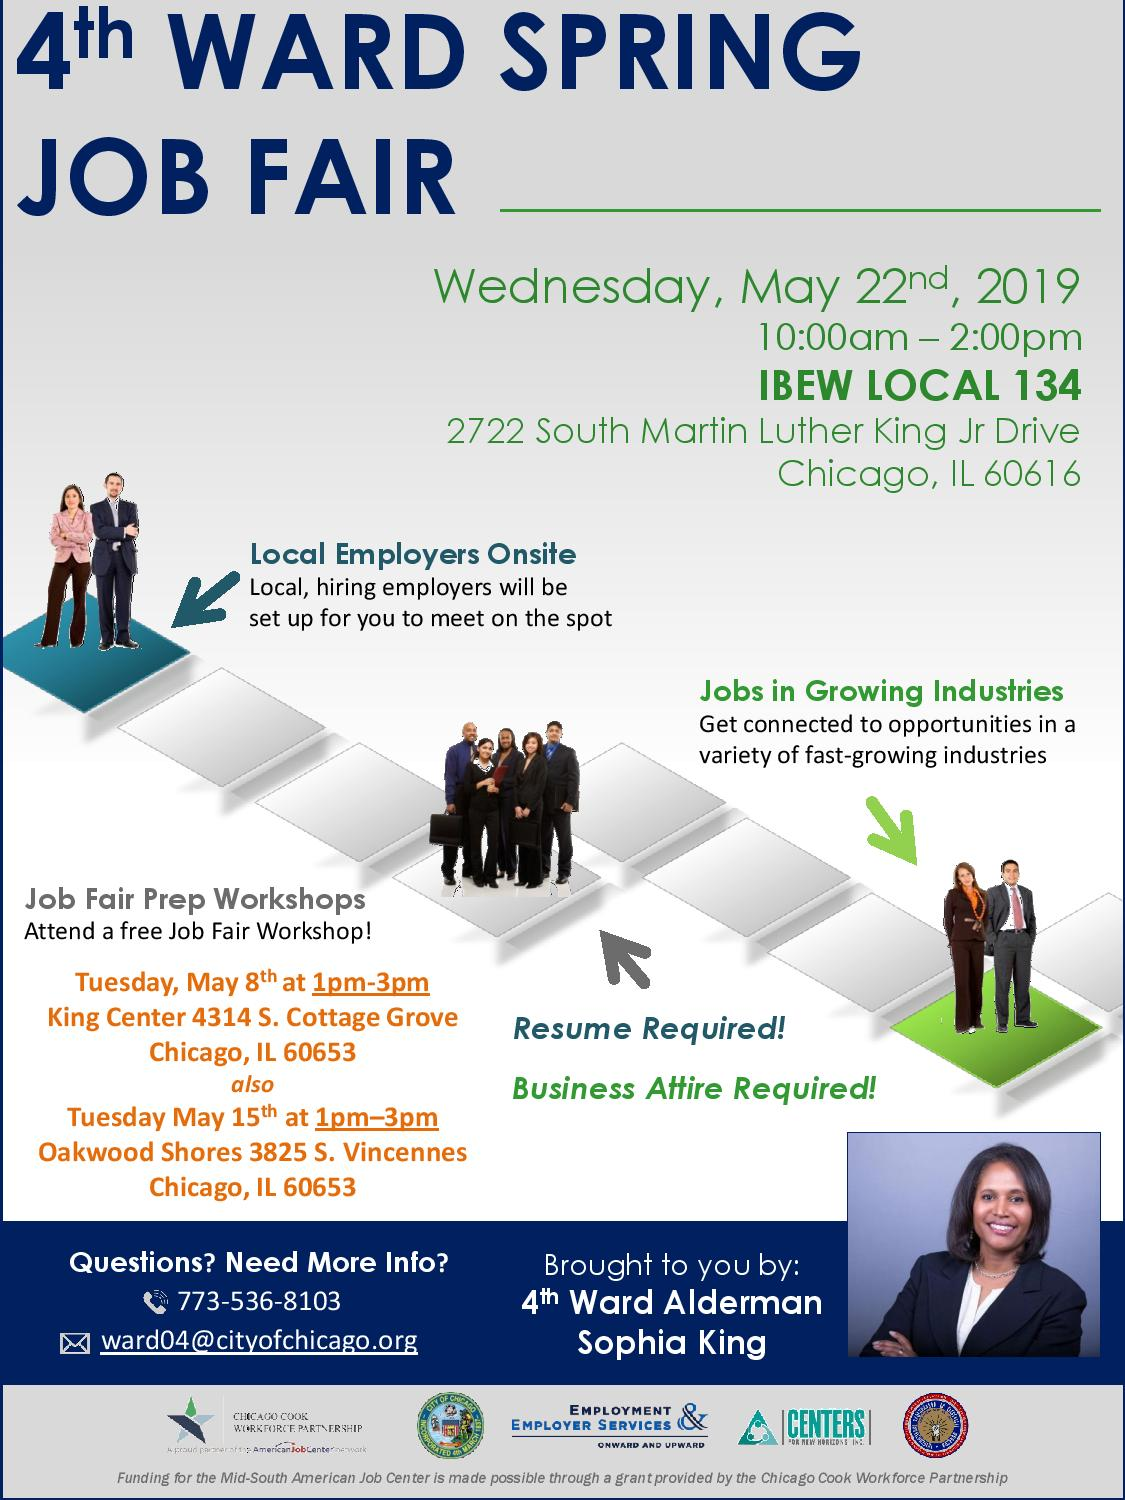 2019 Flyer - 4th Ward Job Fair - 5.2019-page-001